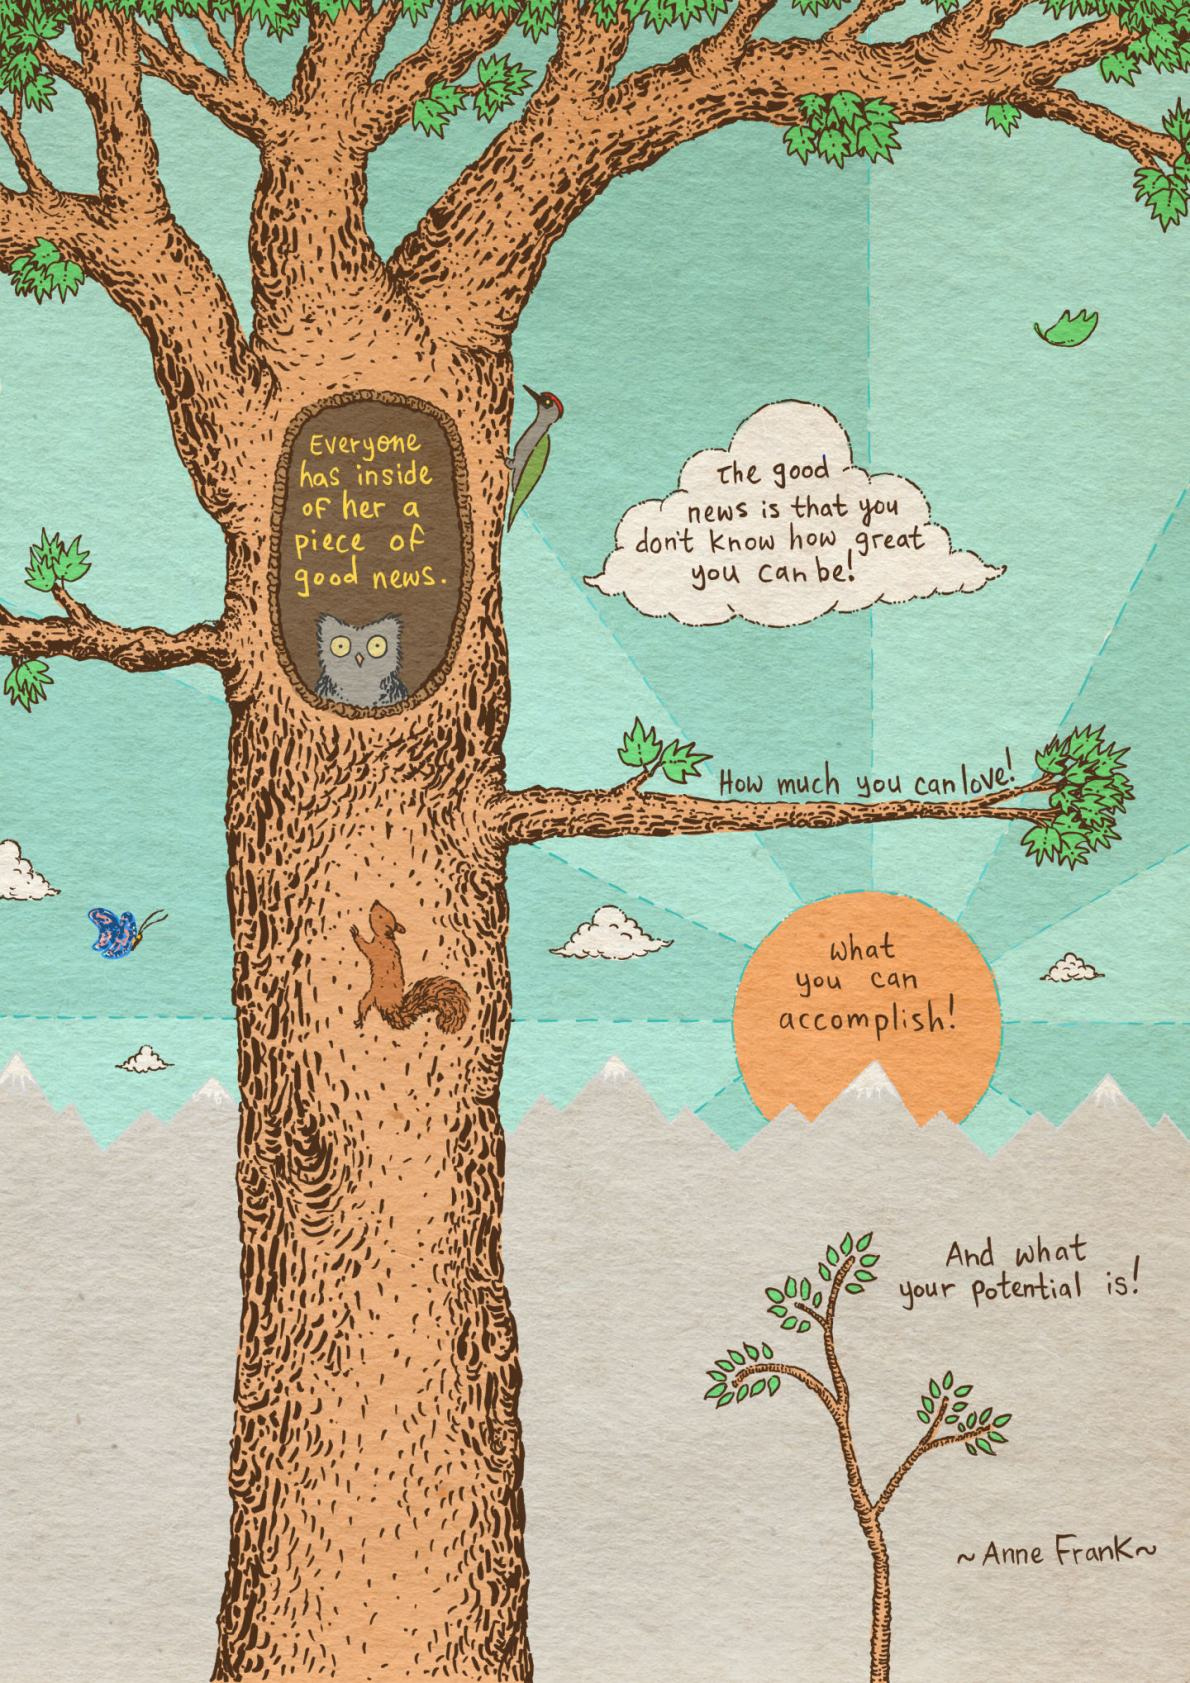 Quote from Anne Frank for Meditations Illustrated